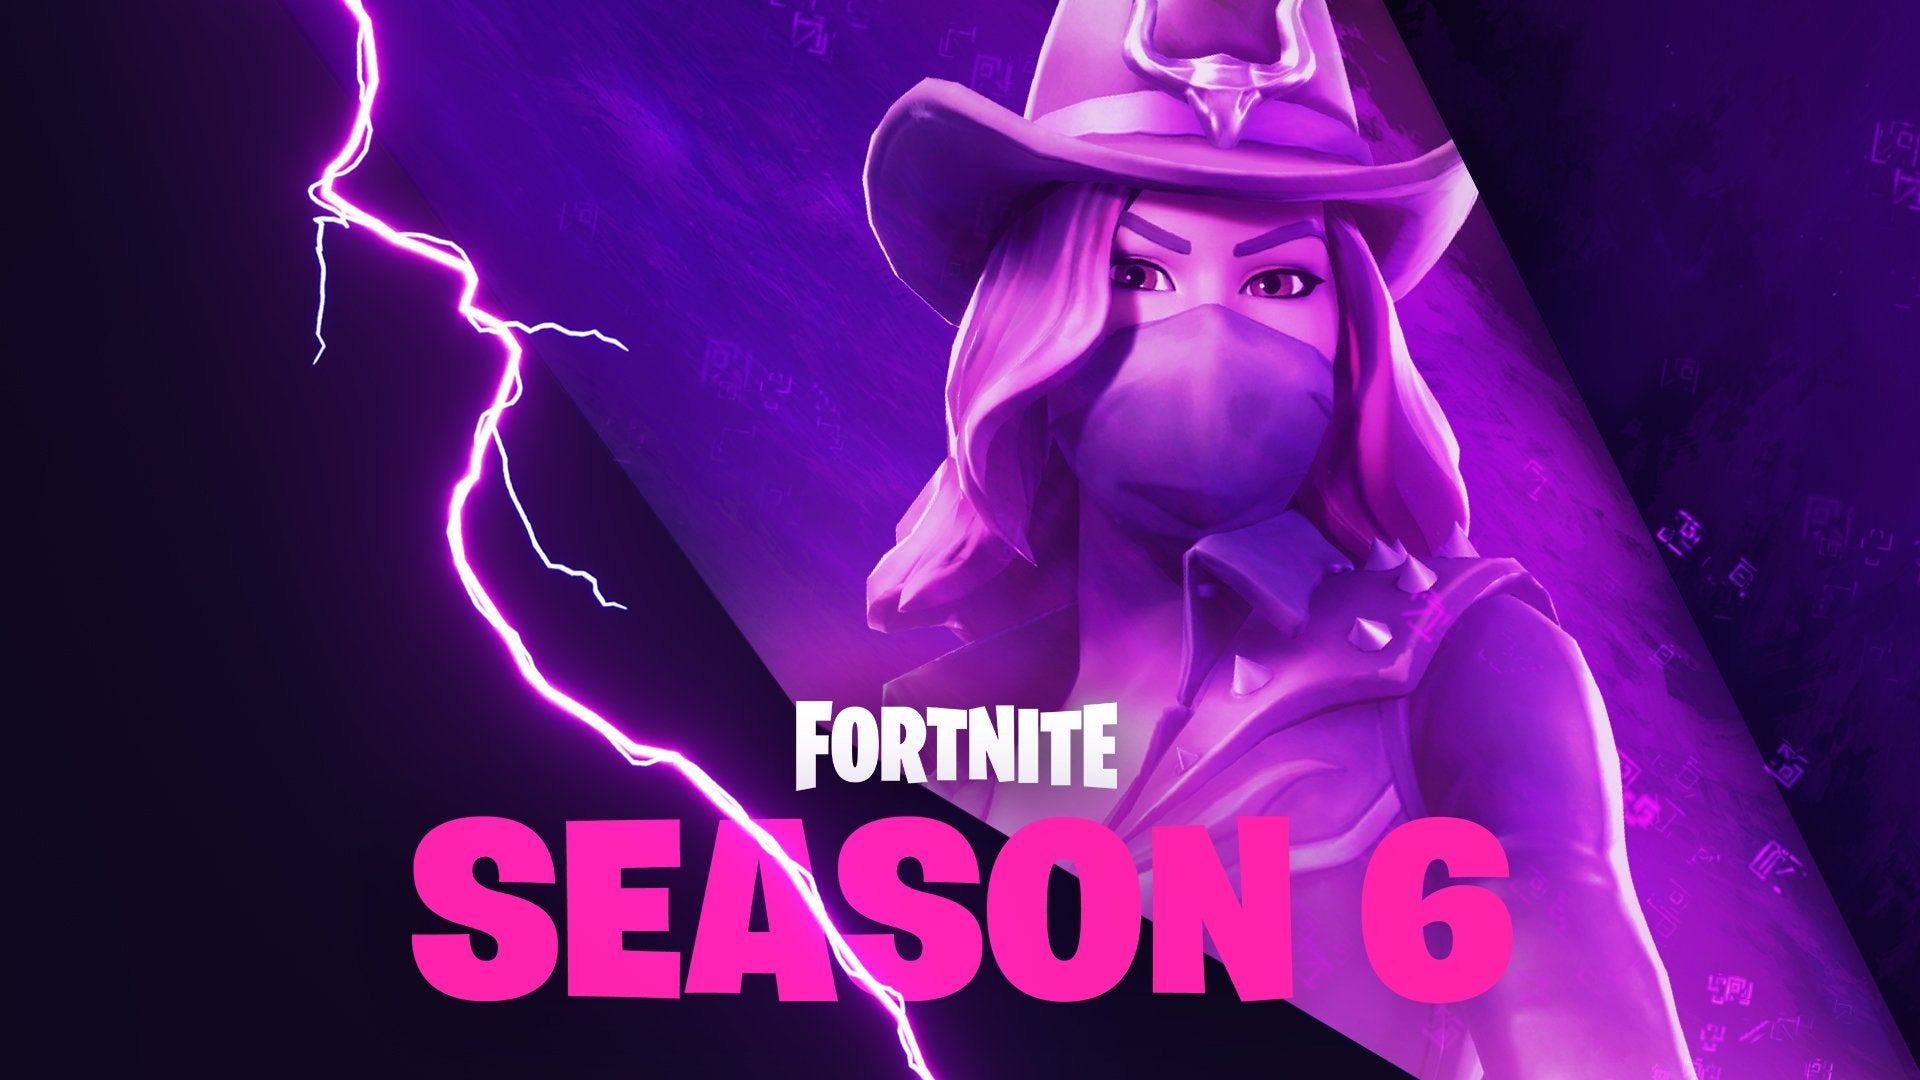 Fortnite Season 6 Guide: How To Unlock The Calamity And Dire Skins